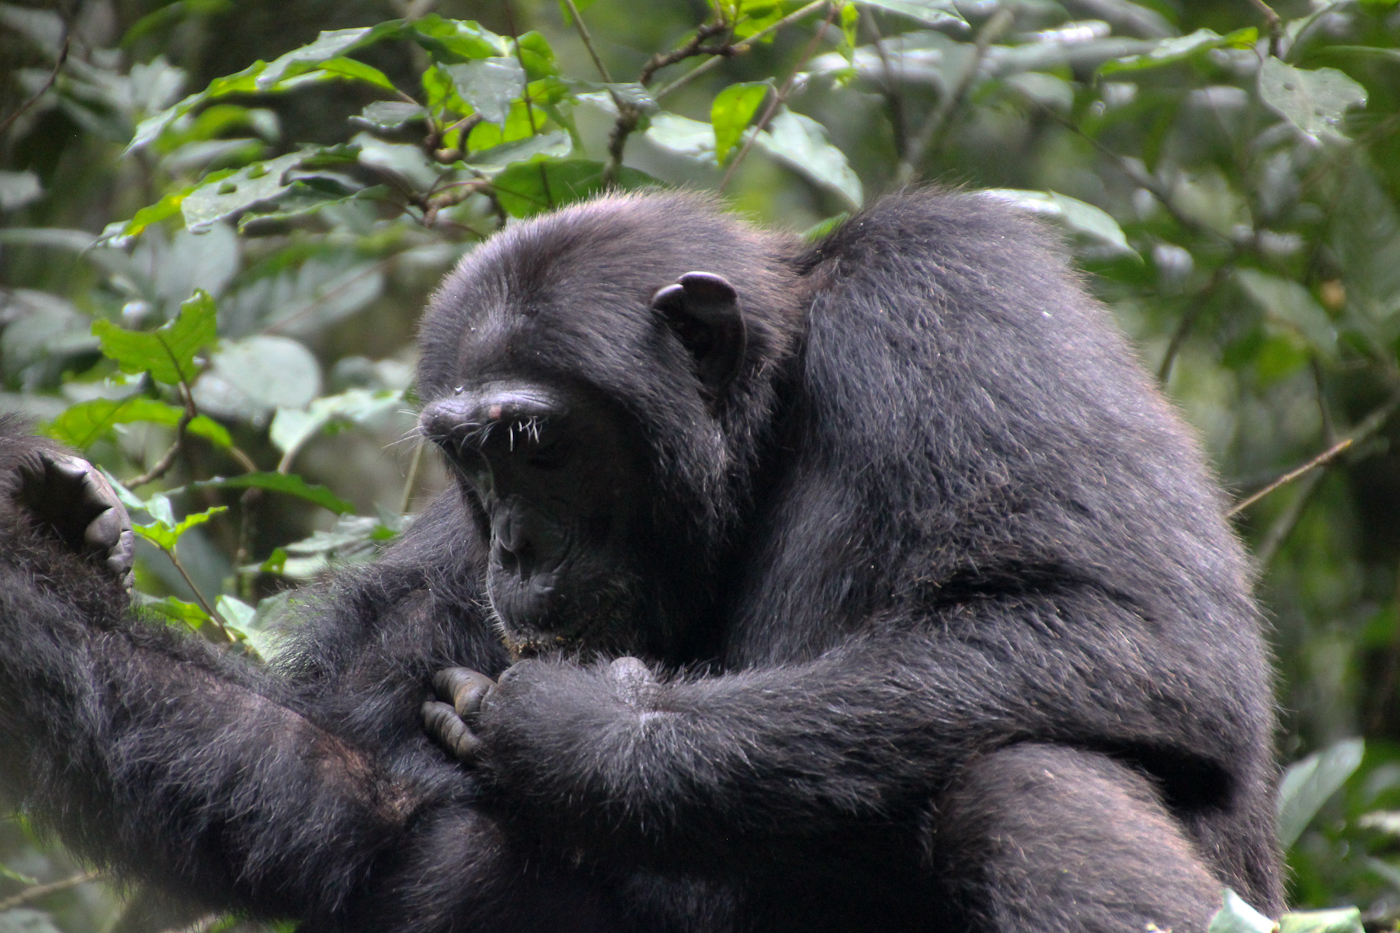 Chimpanzee, Bwindi Impenetrable Forest.